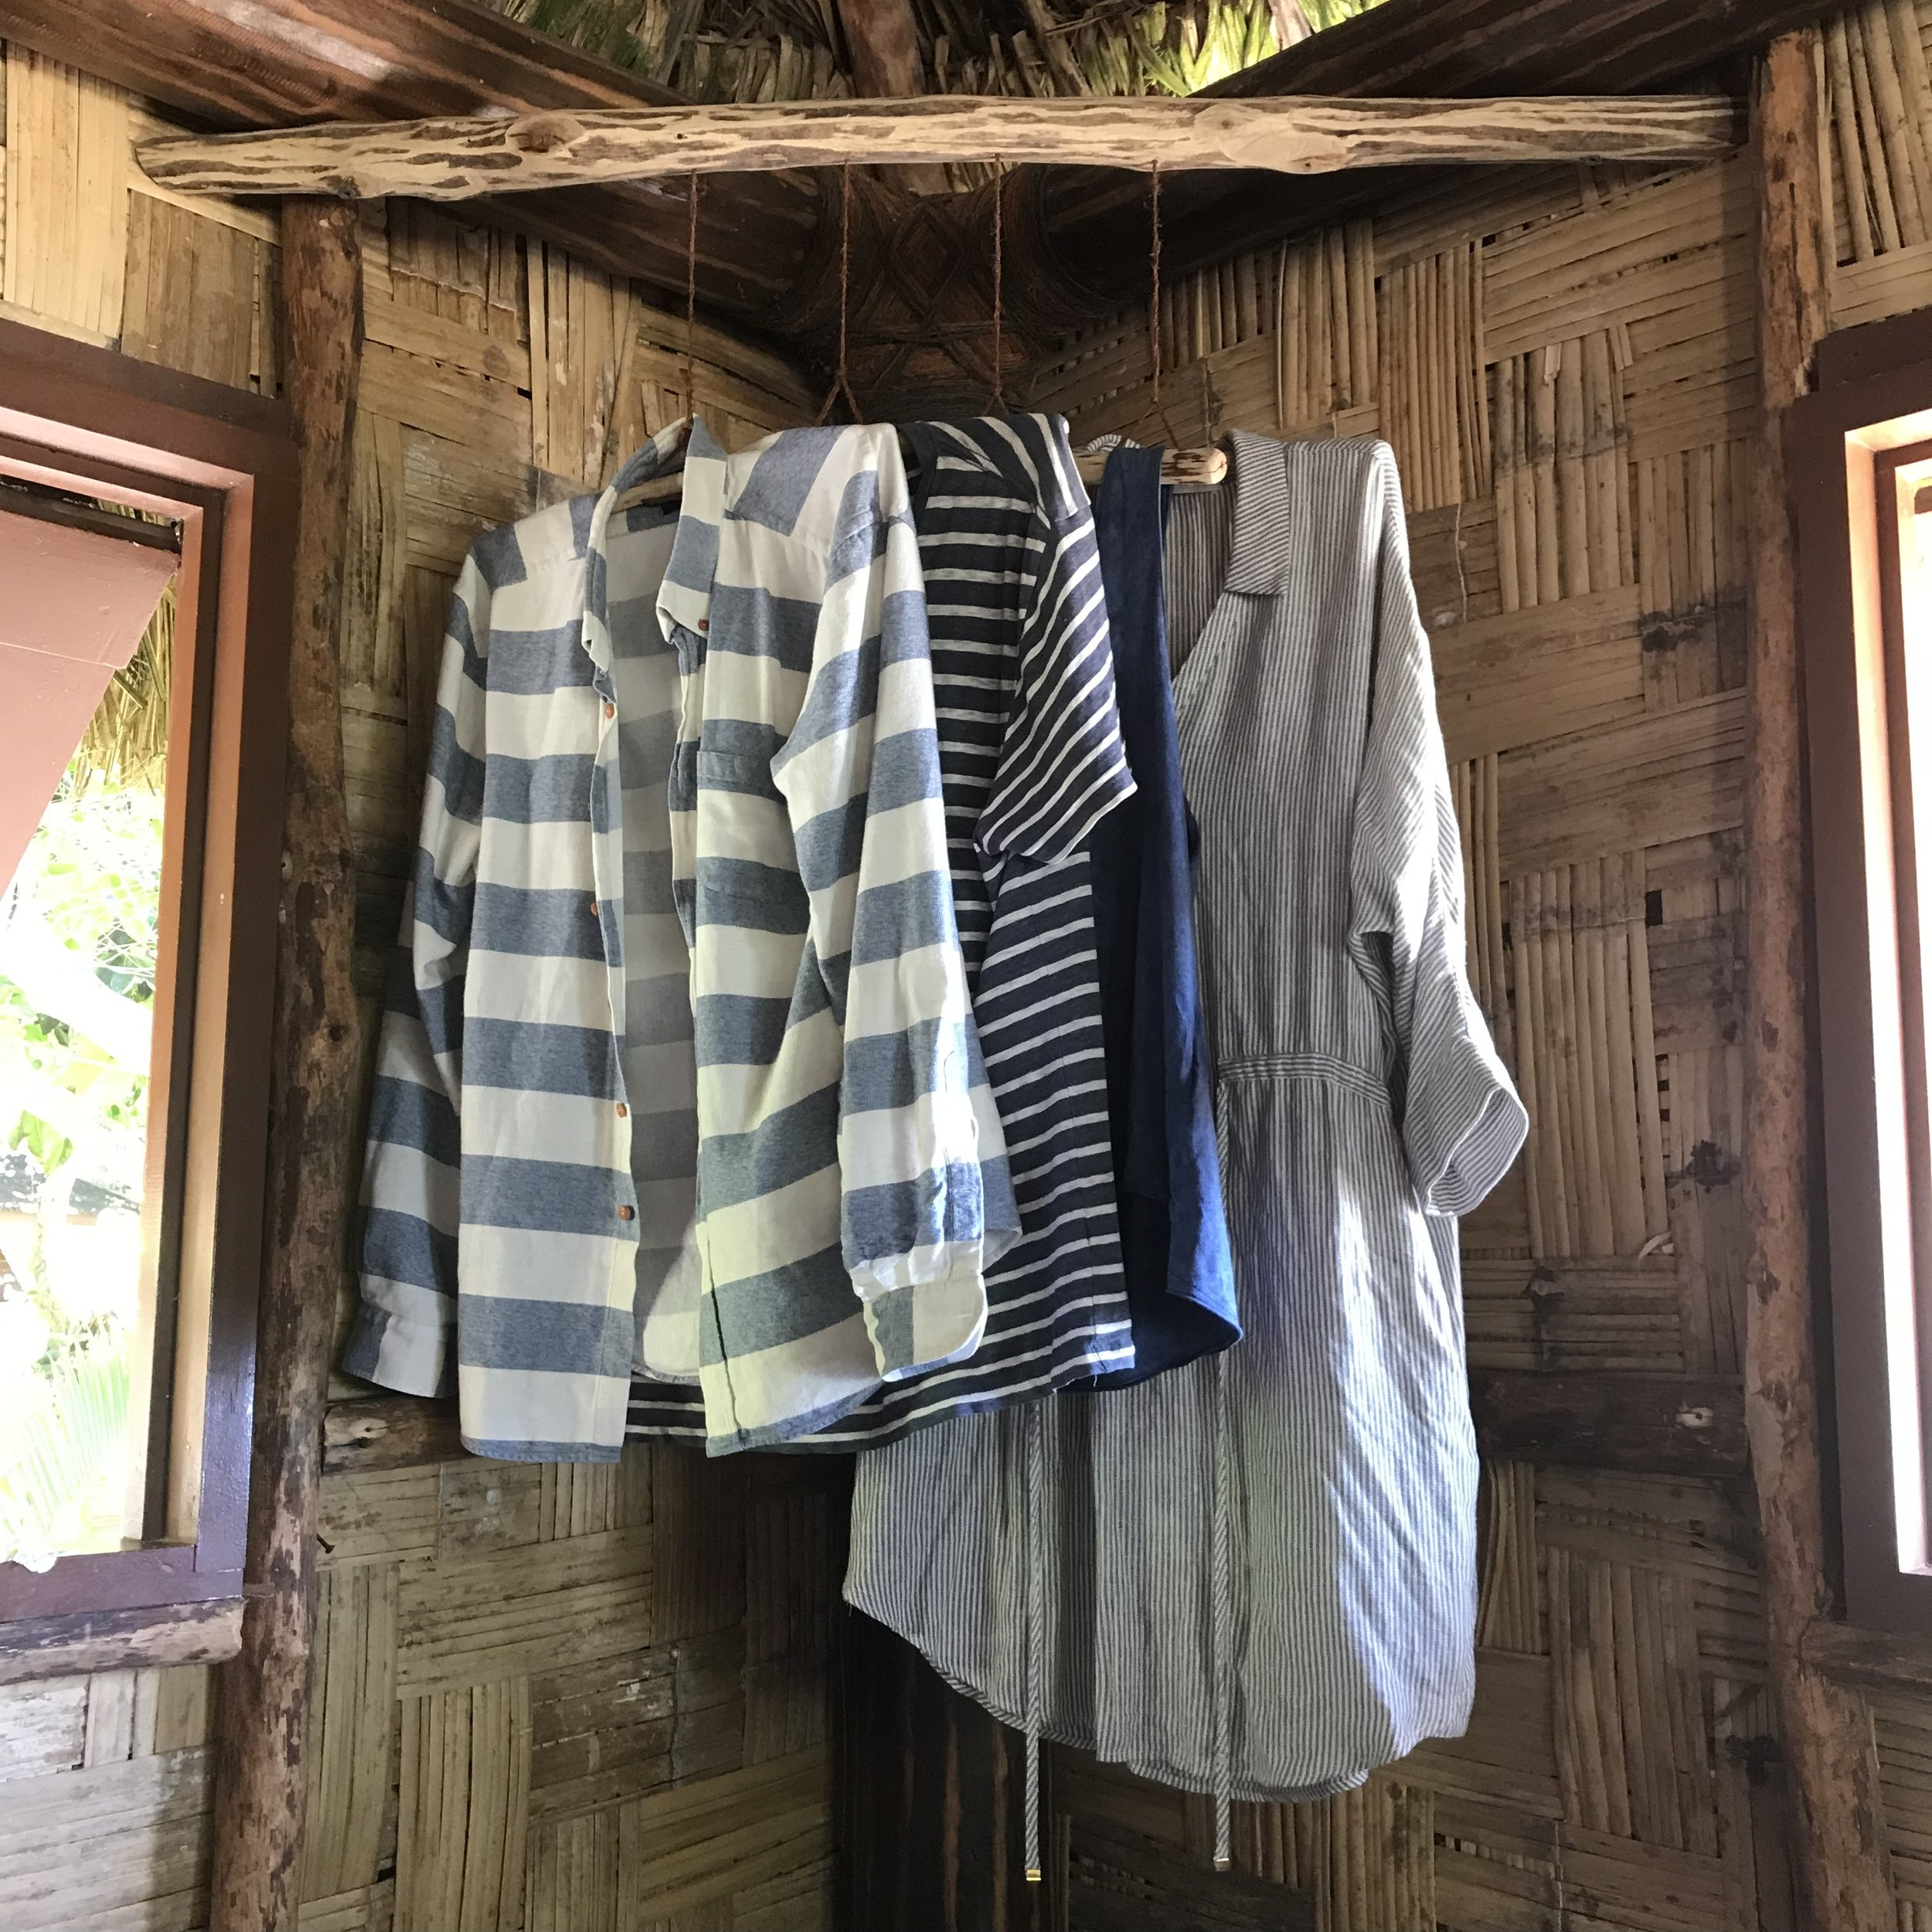 If only my closet were as simple to choose from as this stylishly sustainable one... Leleuvia, Fiji.